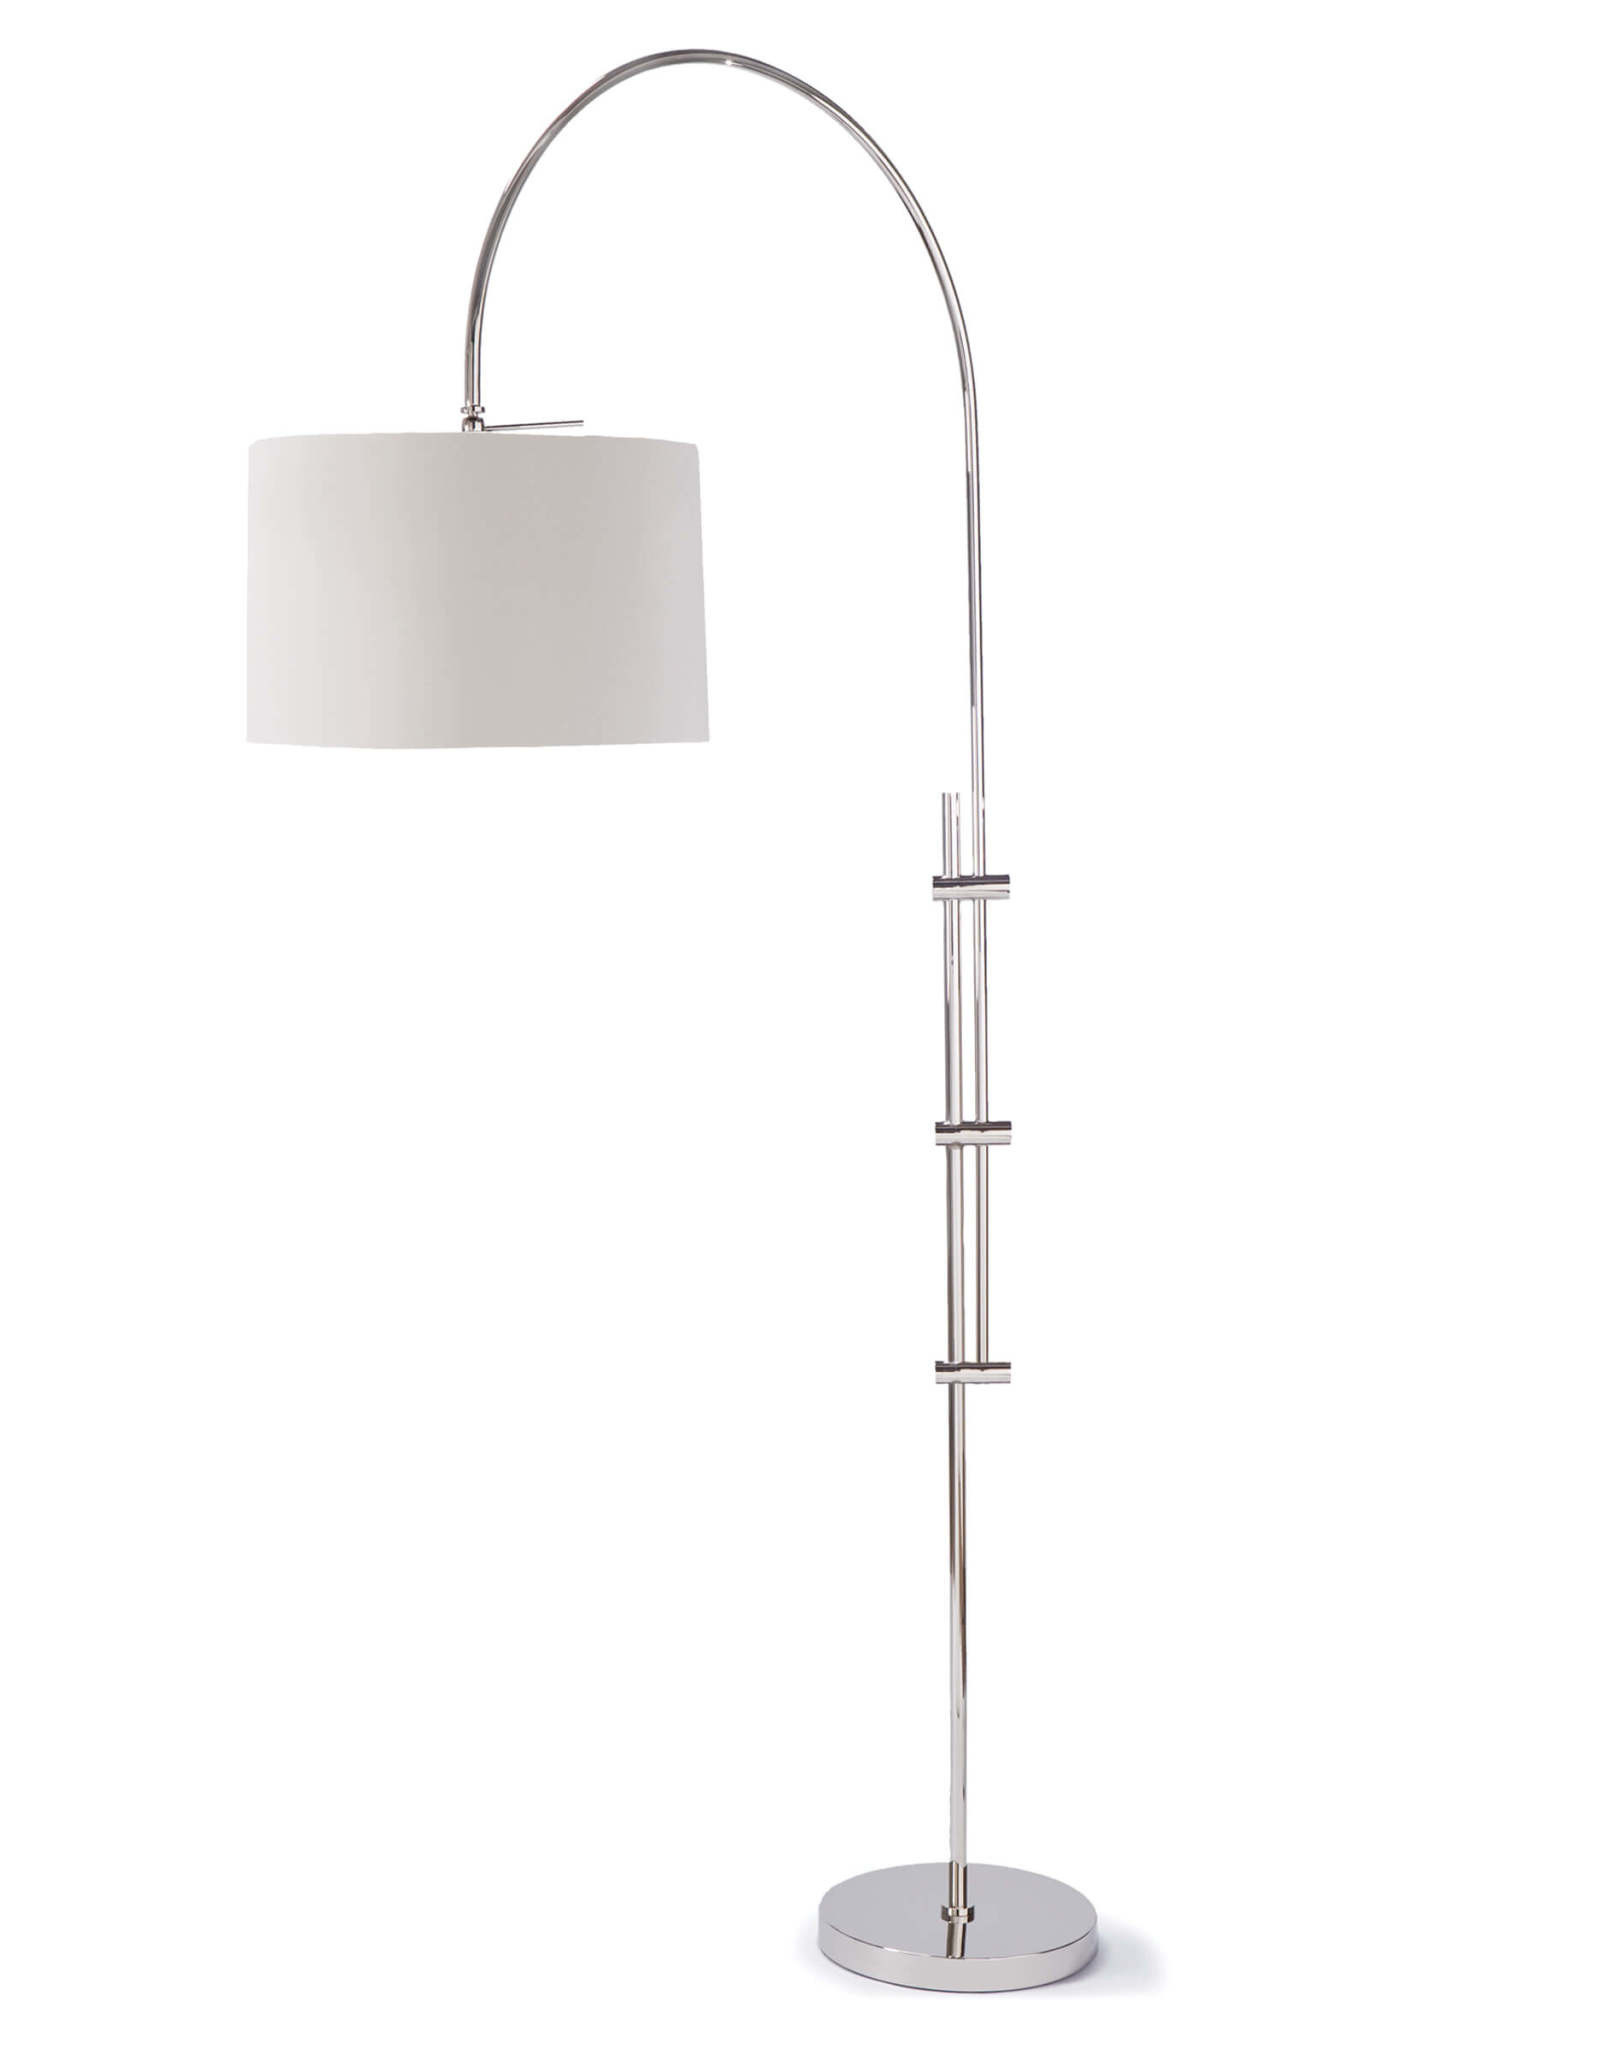 Regina Andrew Design Arc Floor Lamp With Fabric Shade (Polished Nickel)